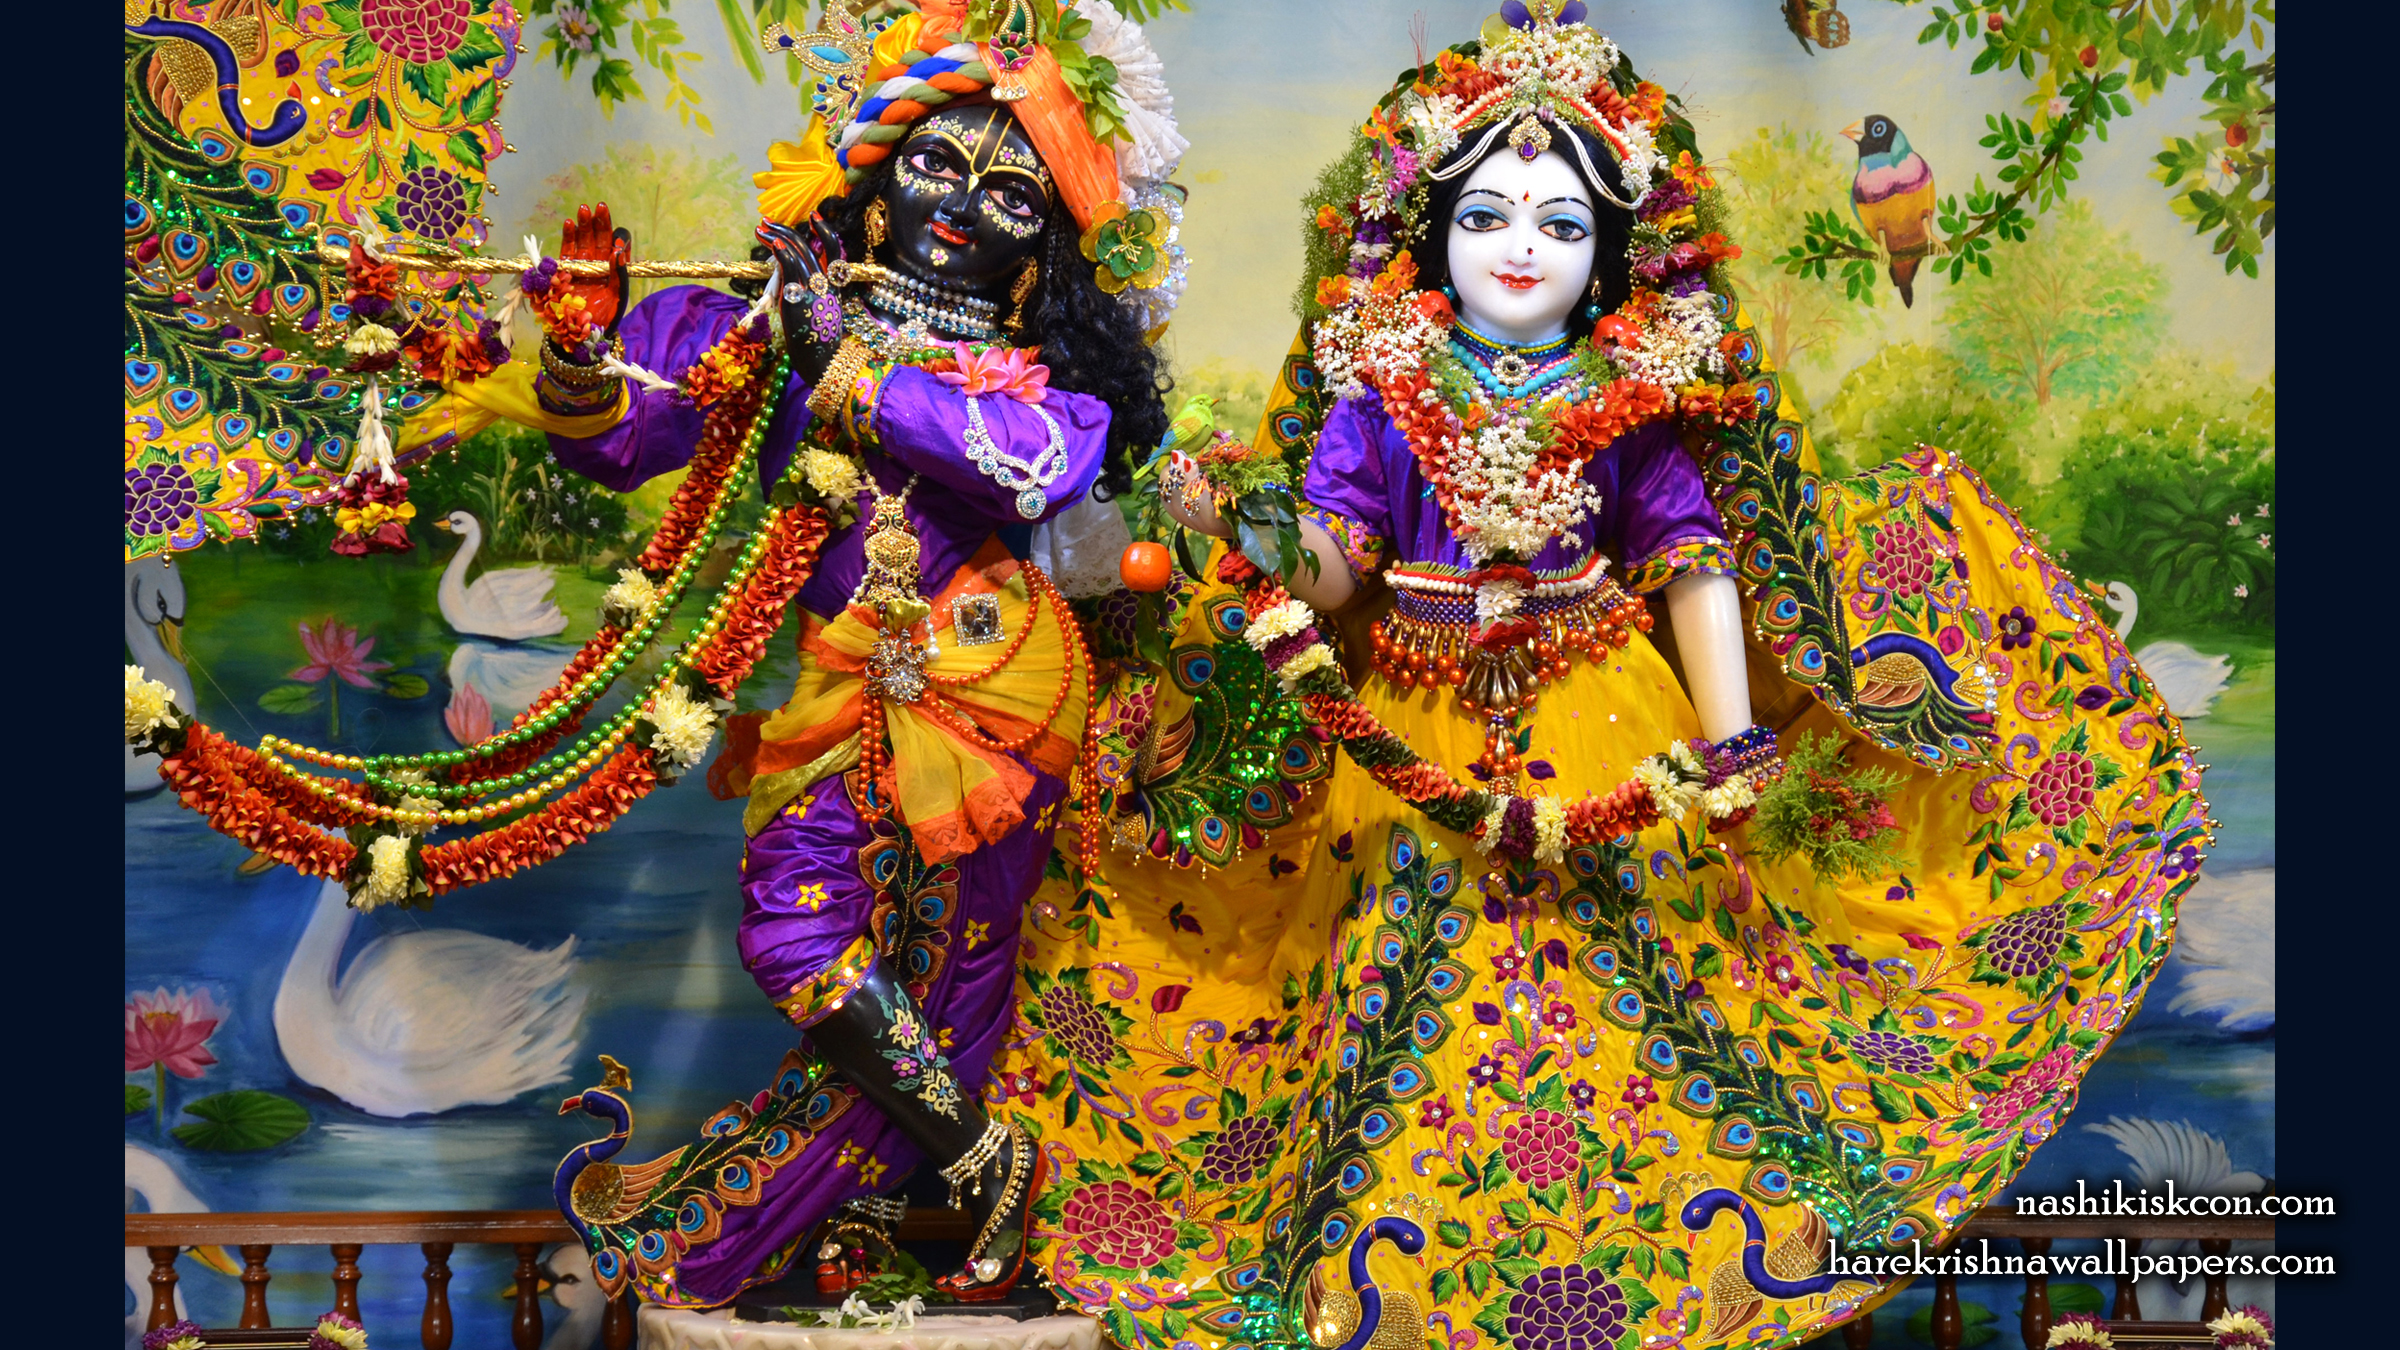 Sri Sri Radha Madan Gopal Wallpaper (013) Size 2400x1350 Download